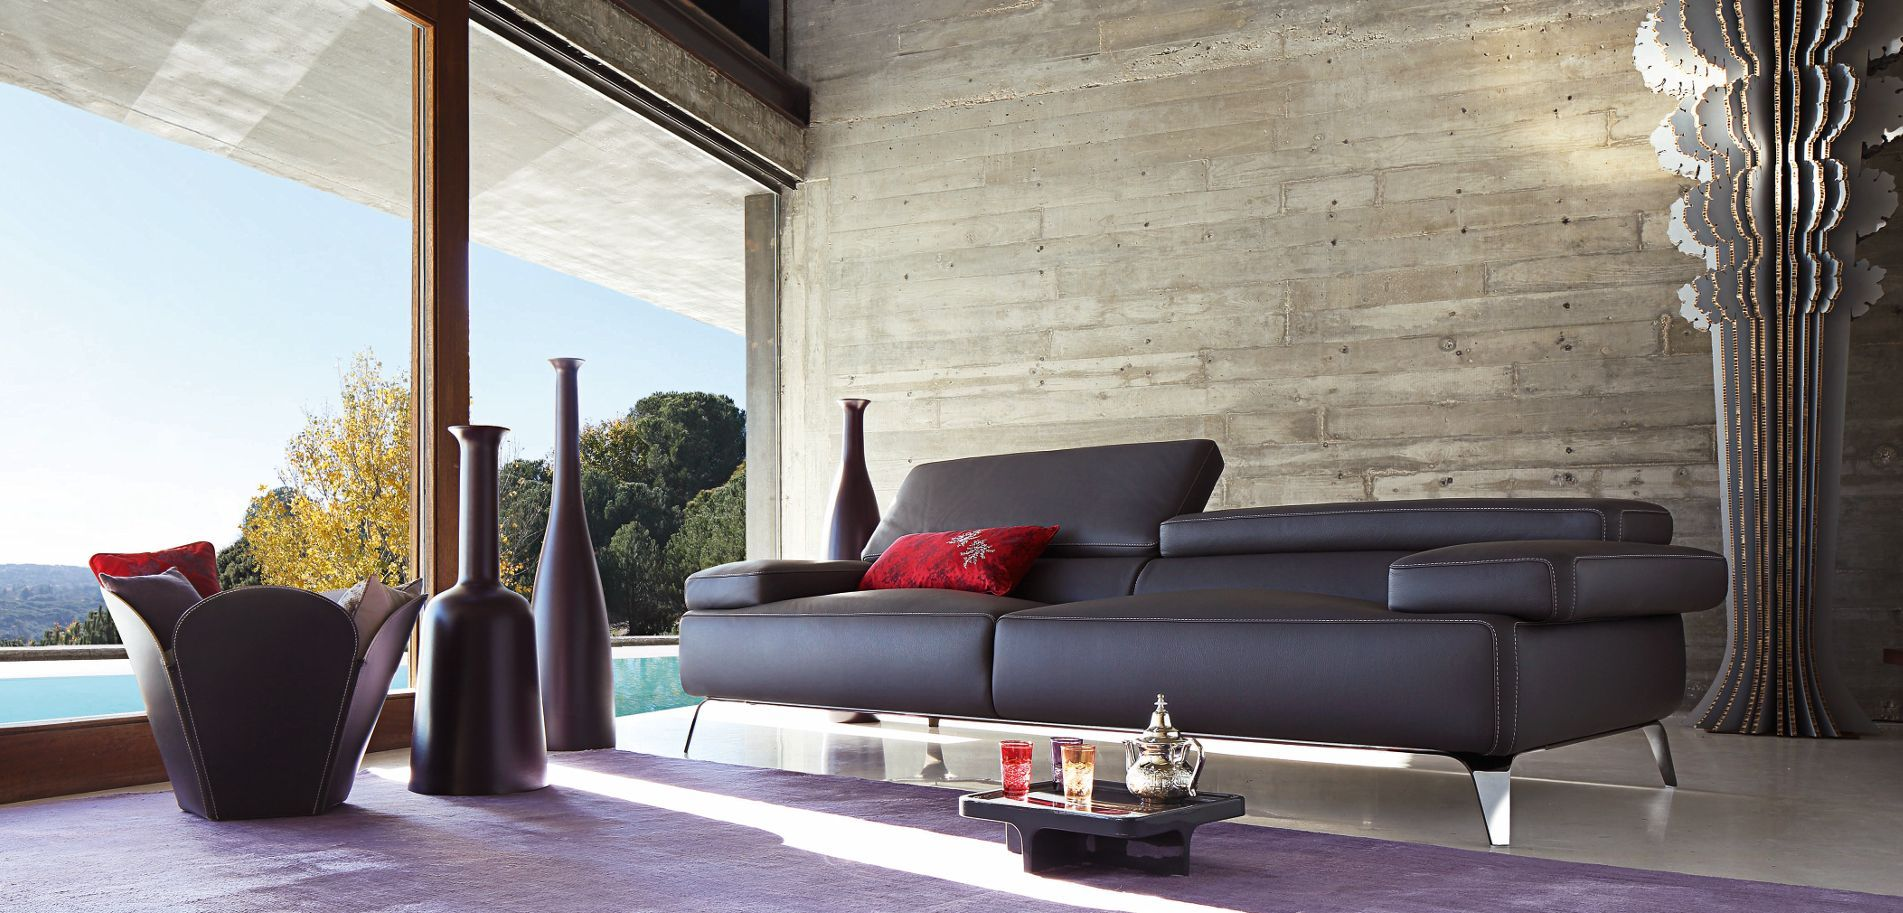 Discover the design furniture selection and the